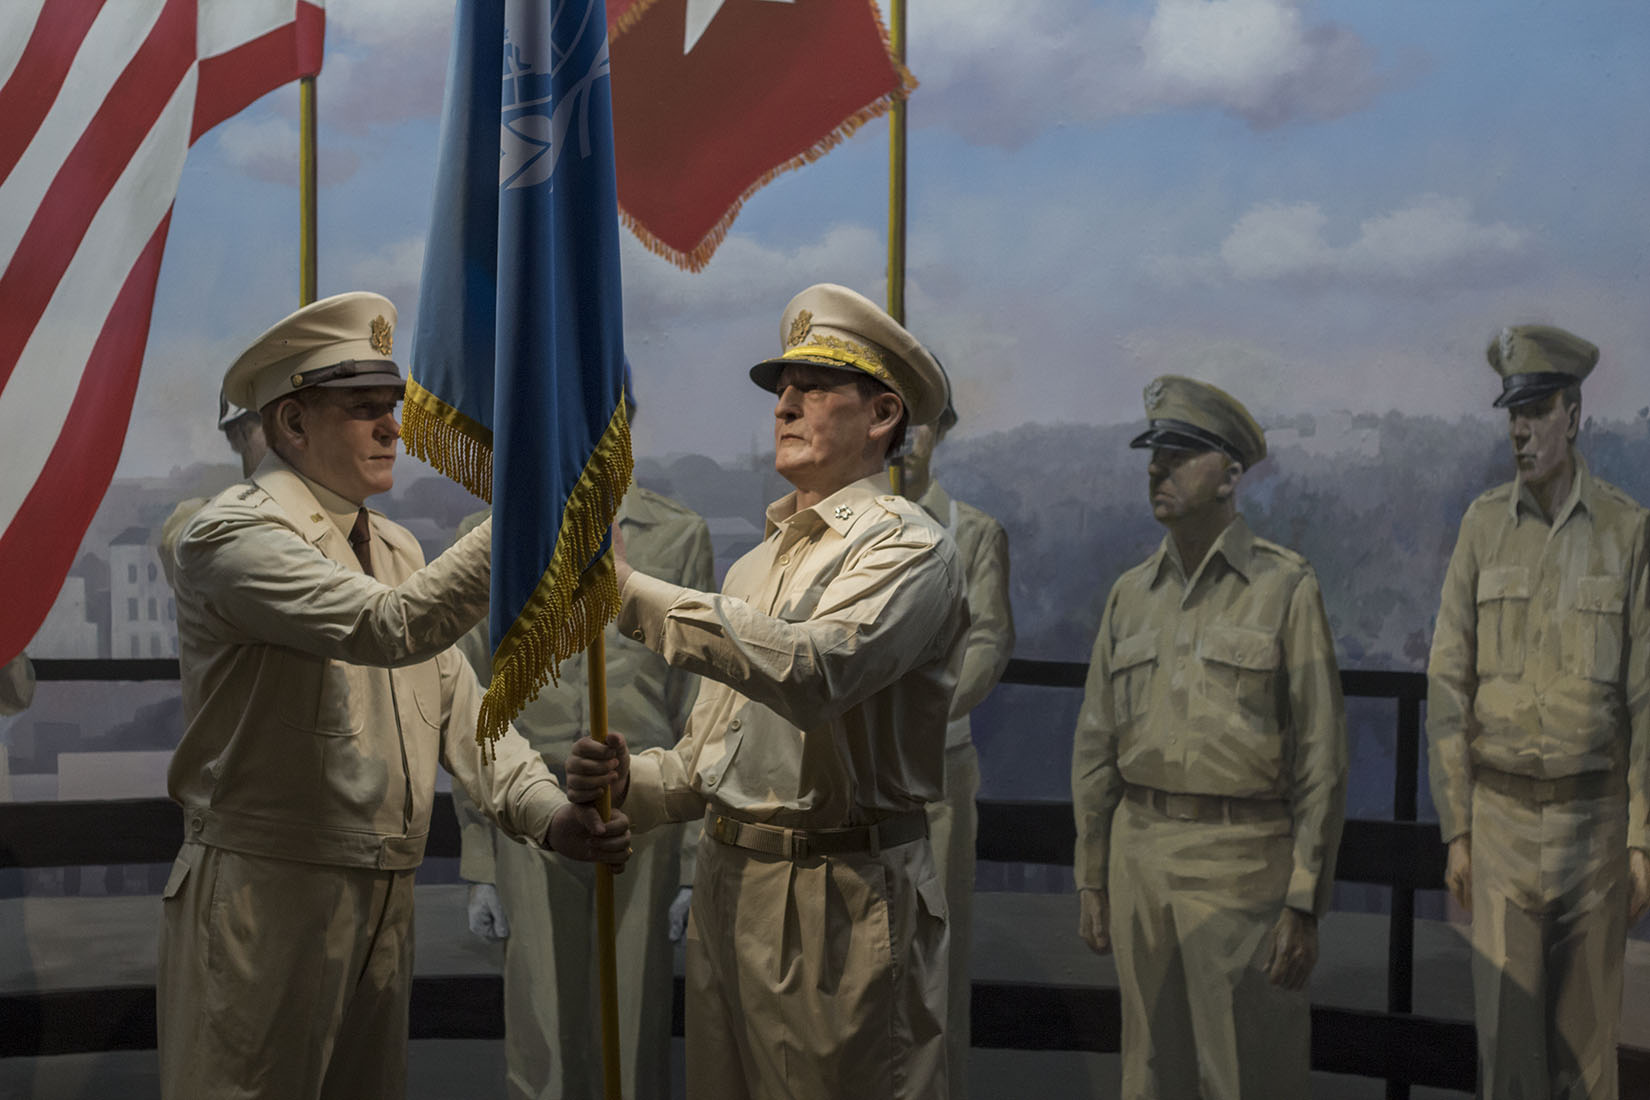 Officers of the United Nations, uniform, flag, end of the Korean War, armistice, soldiers